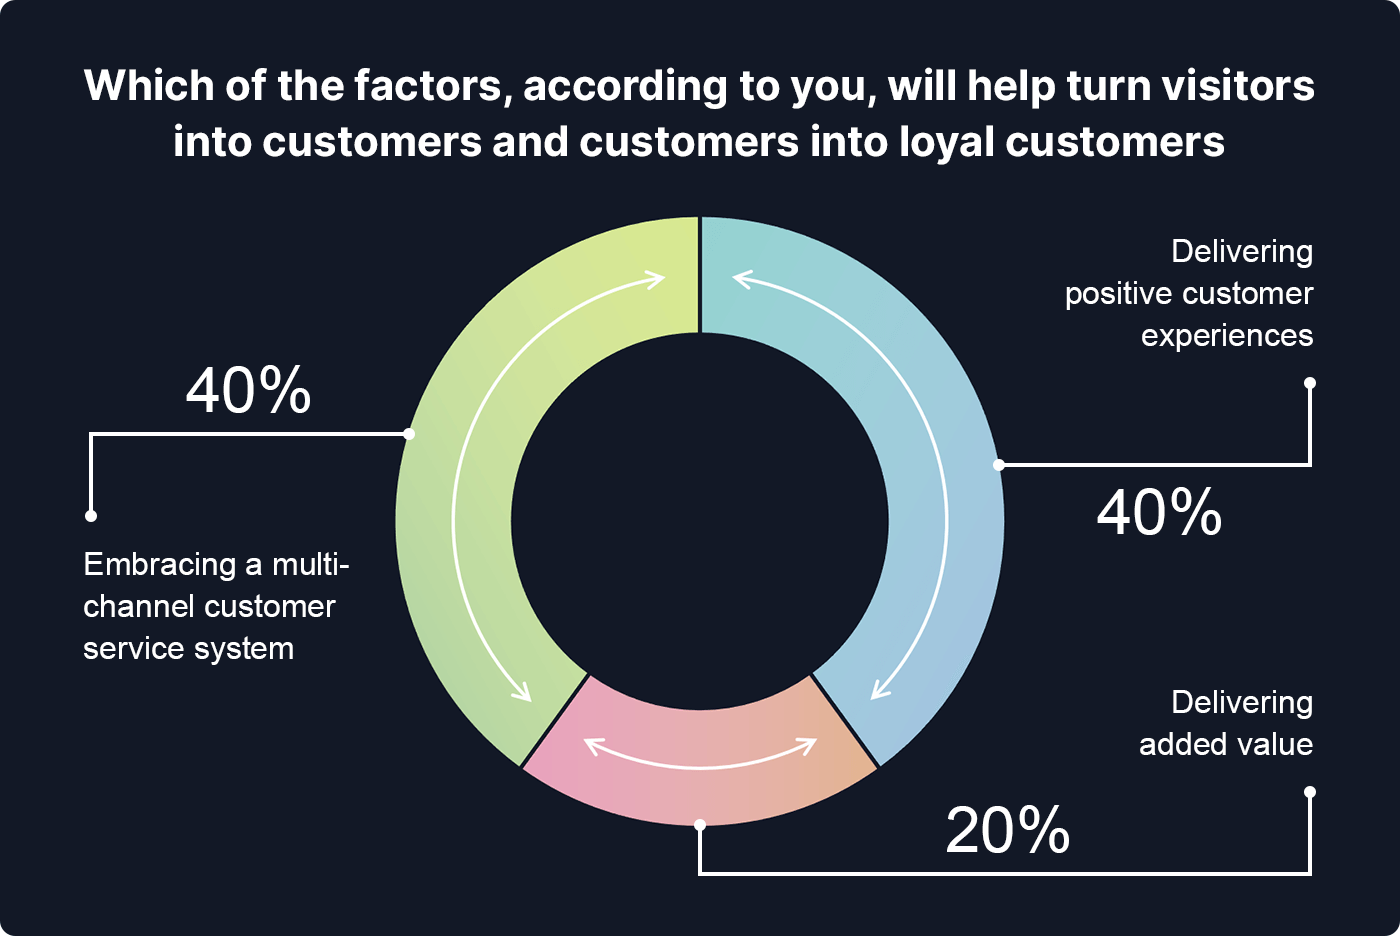 Chart showing which factors will help turn visitors into customers and customers into loyal customers